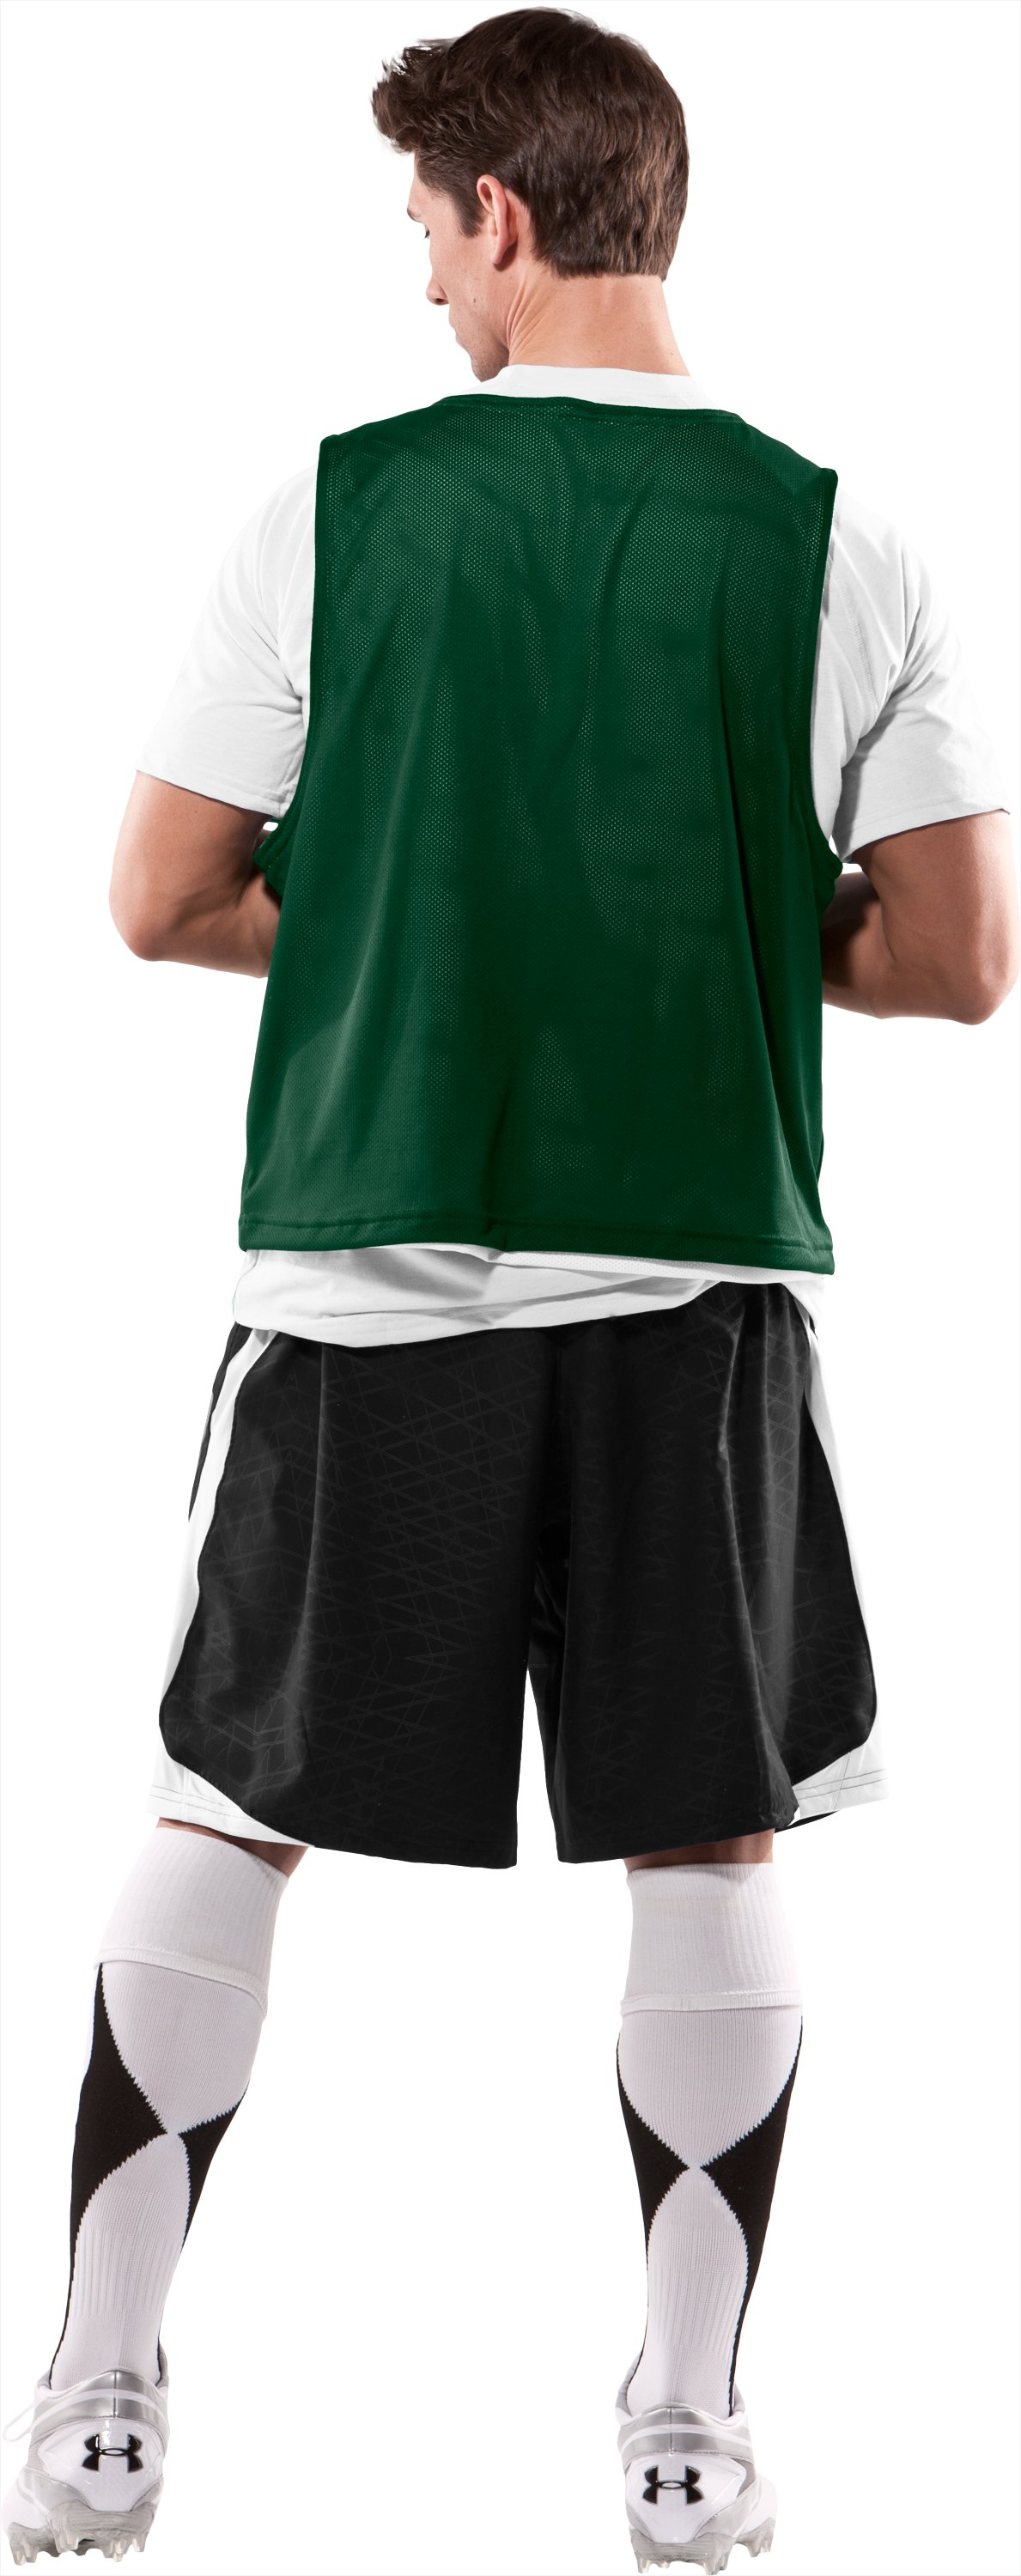 Men's Practice Jersey, Forest Green, Back